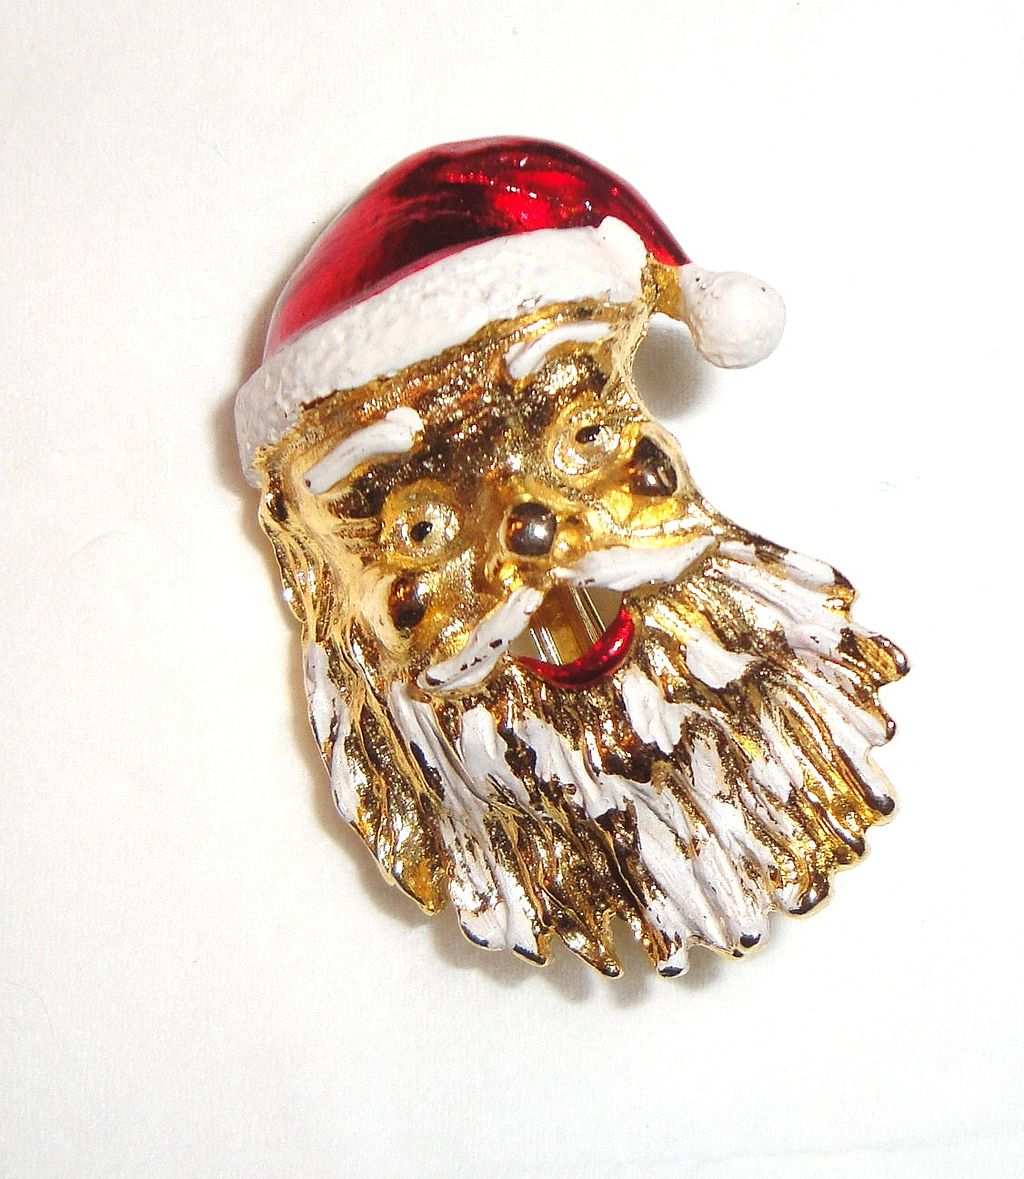 Vintage Signed Gerry's Santa's Face Pin